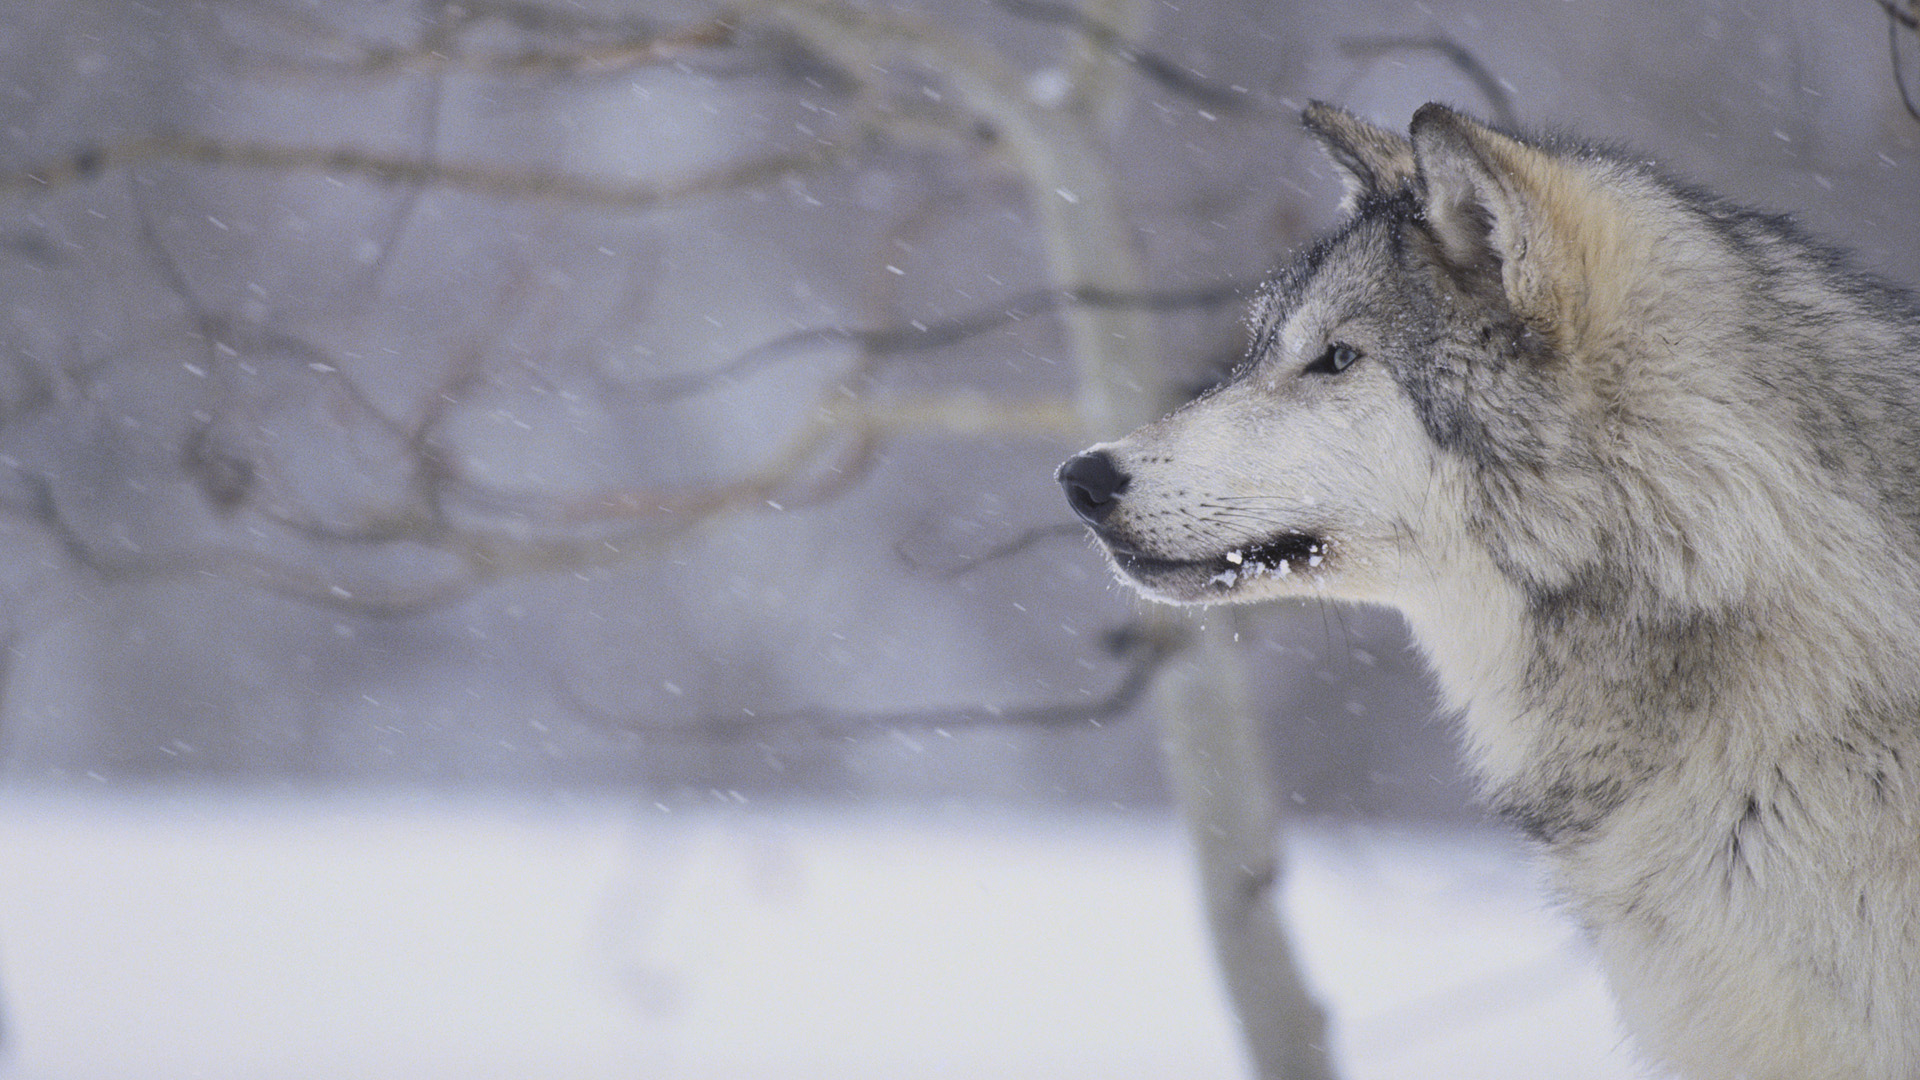 Image   Gray wolf in snow tweet hd wallpapers animals photo gray wolf 1920x1080